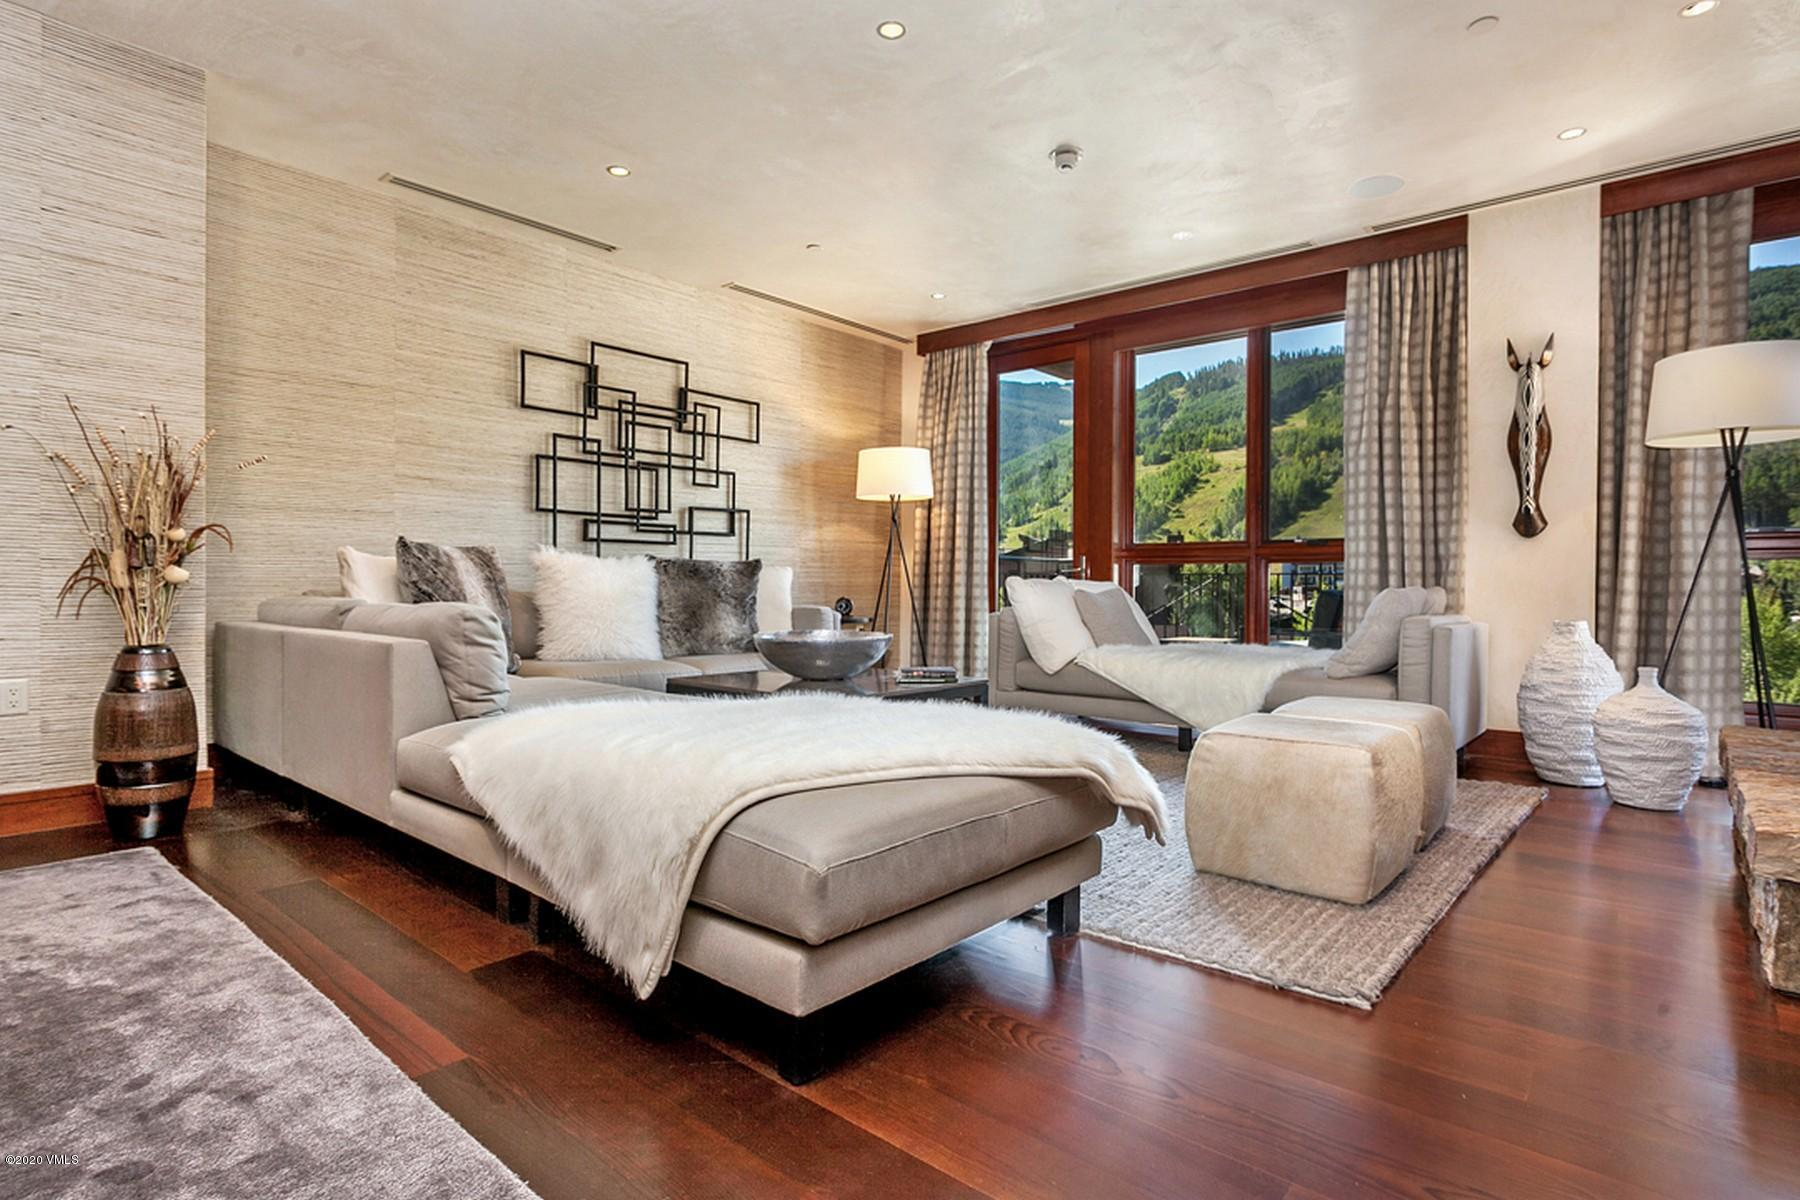 Enjoy direct Vail Mountain views from every room of this impeccably furnished private residence in the heart of Vail Village. The Solaris features world-class amenities including fine-dining at Matsuhisa, private indoor pool and fitness center, heated underground parking and on-site public skating rink. This residence is offered partially furnished and ready to enjoy.